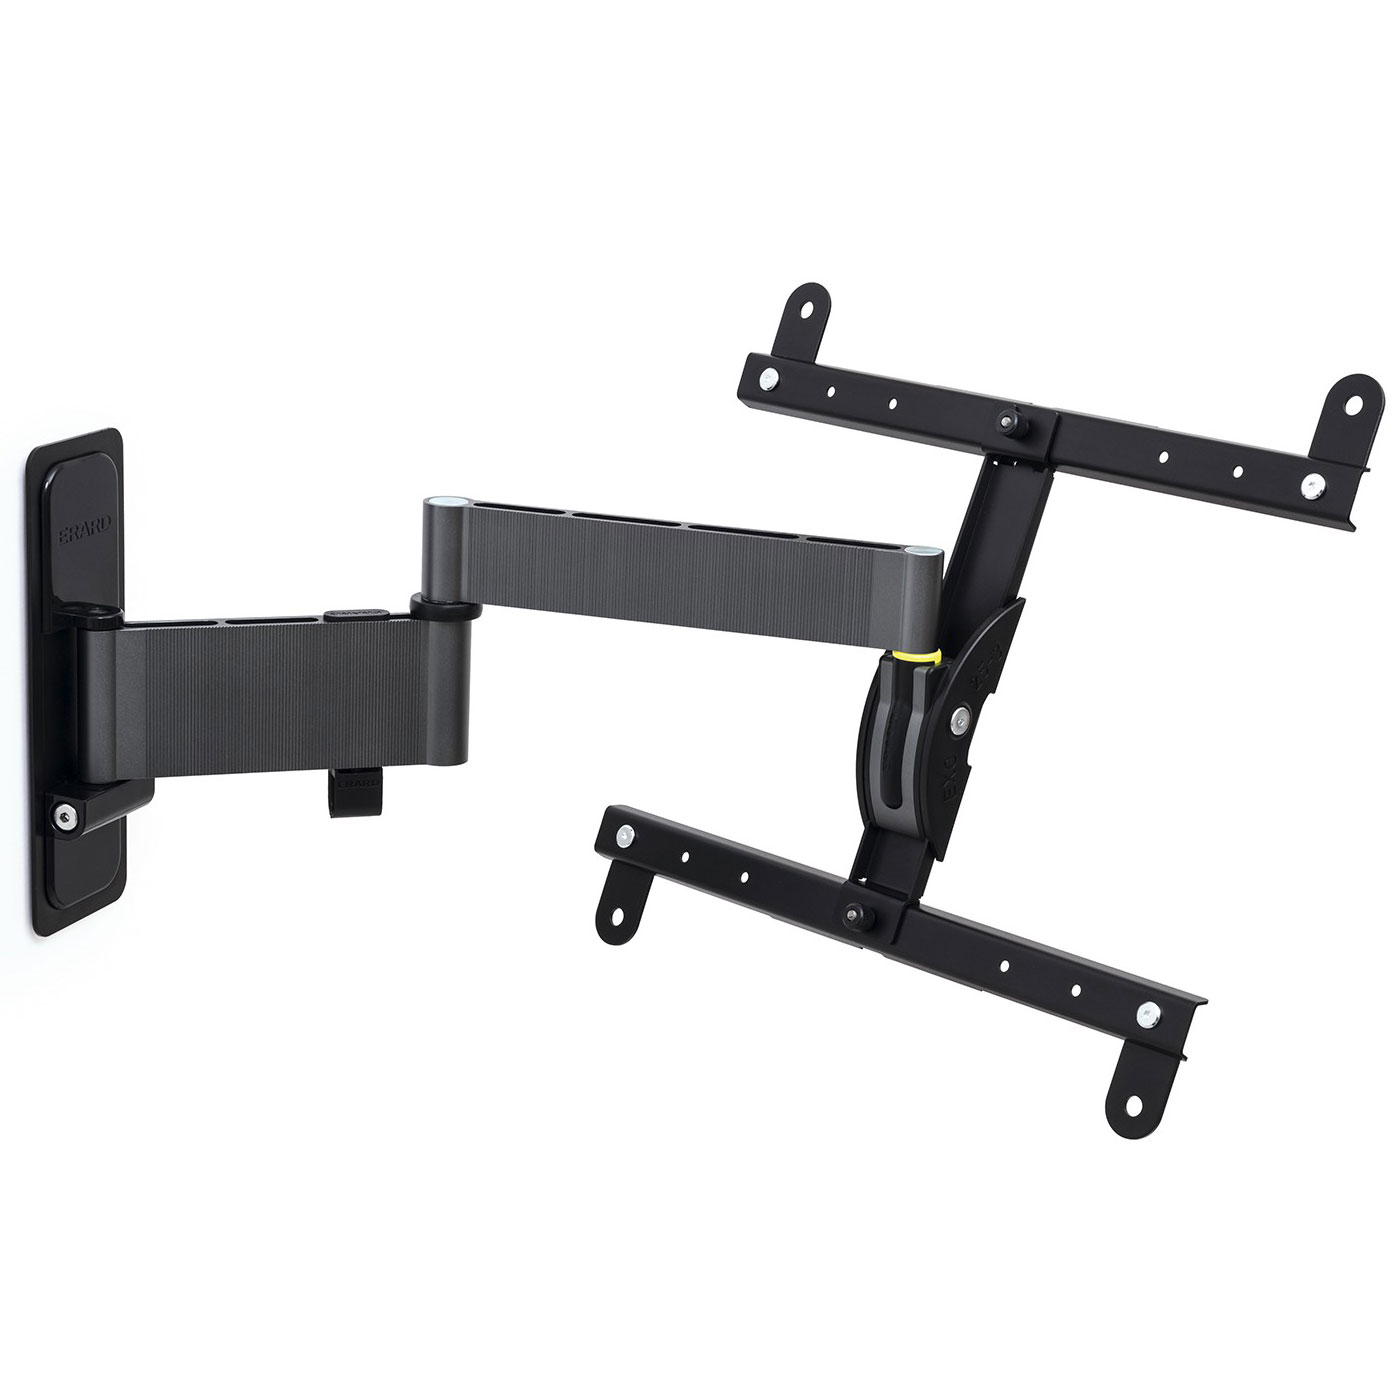 Erard exo 400tw3 support mural tv erard group sur ldlc - Support tv 55 orientable ...